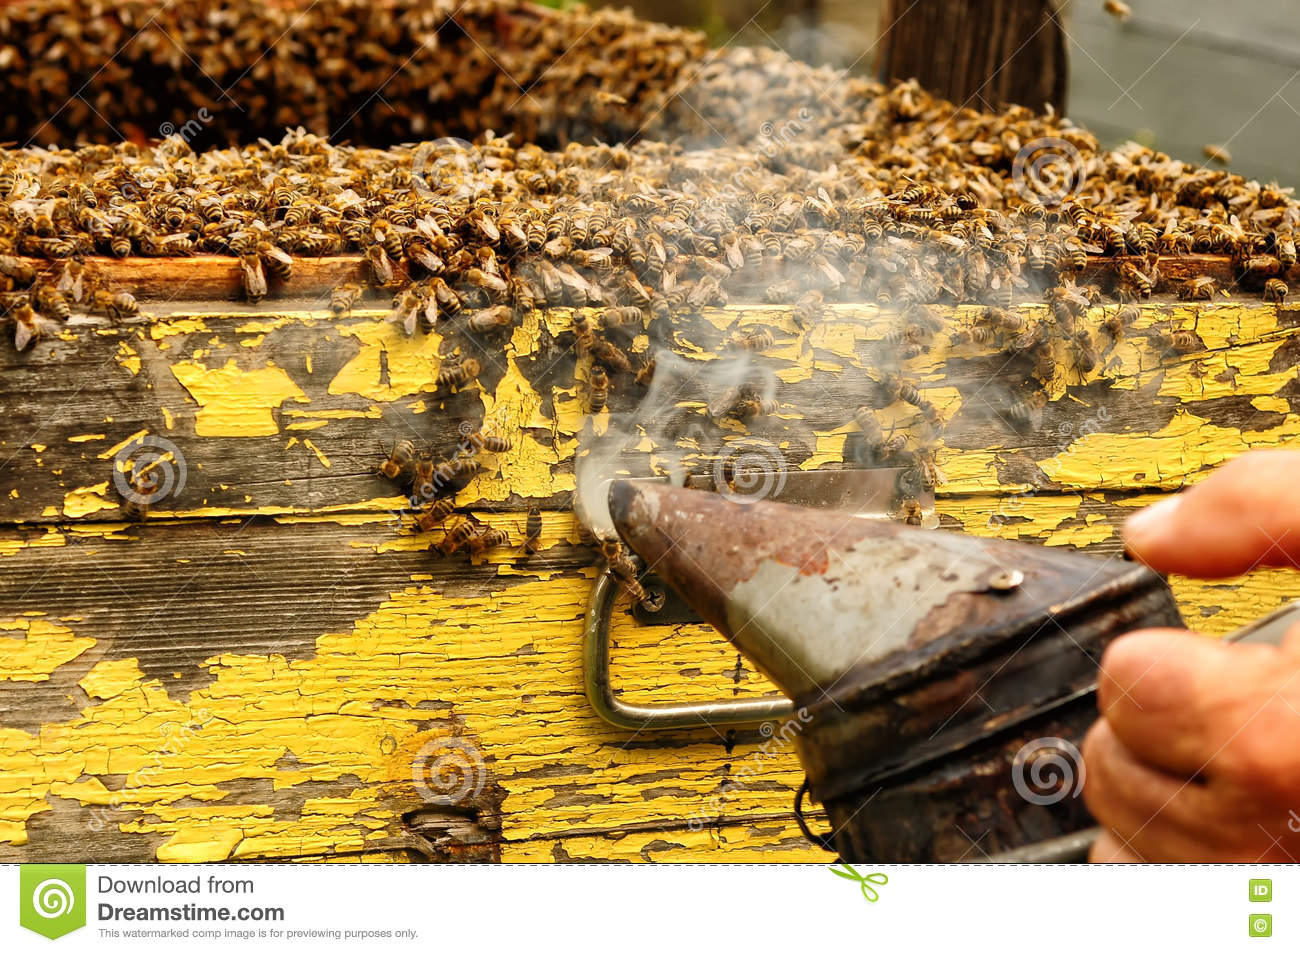 Smoker Beekeepers Tool To Keep Bees Away From Hive Stock